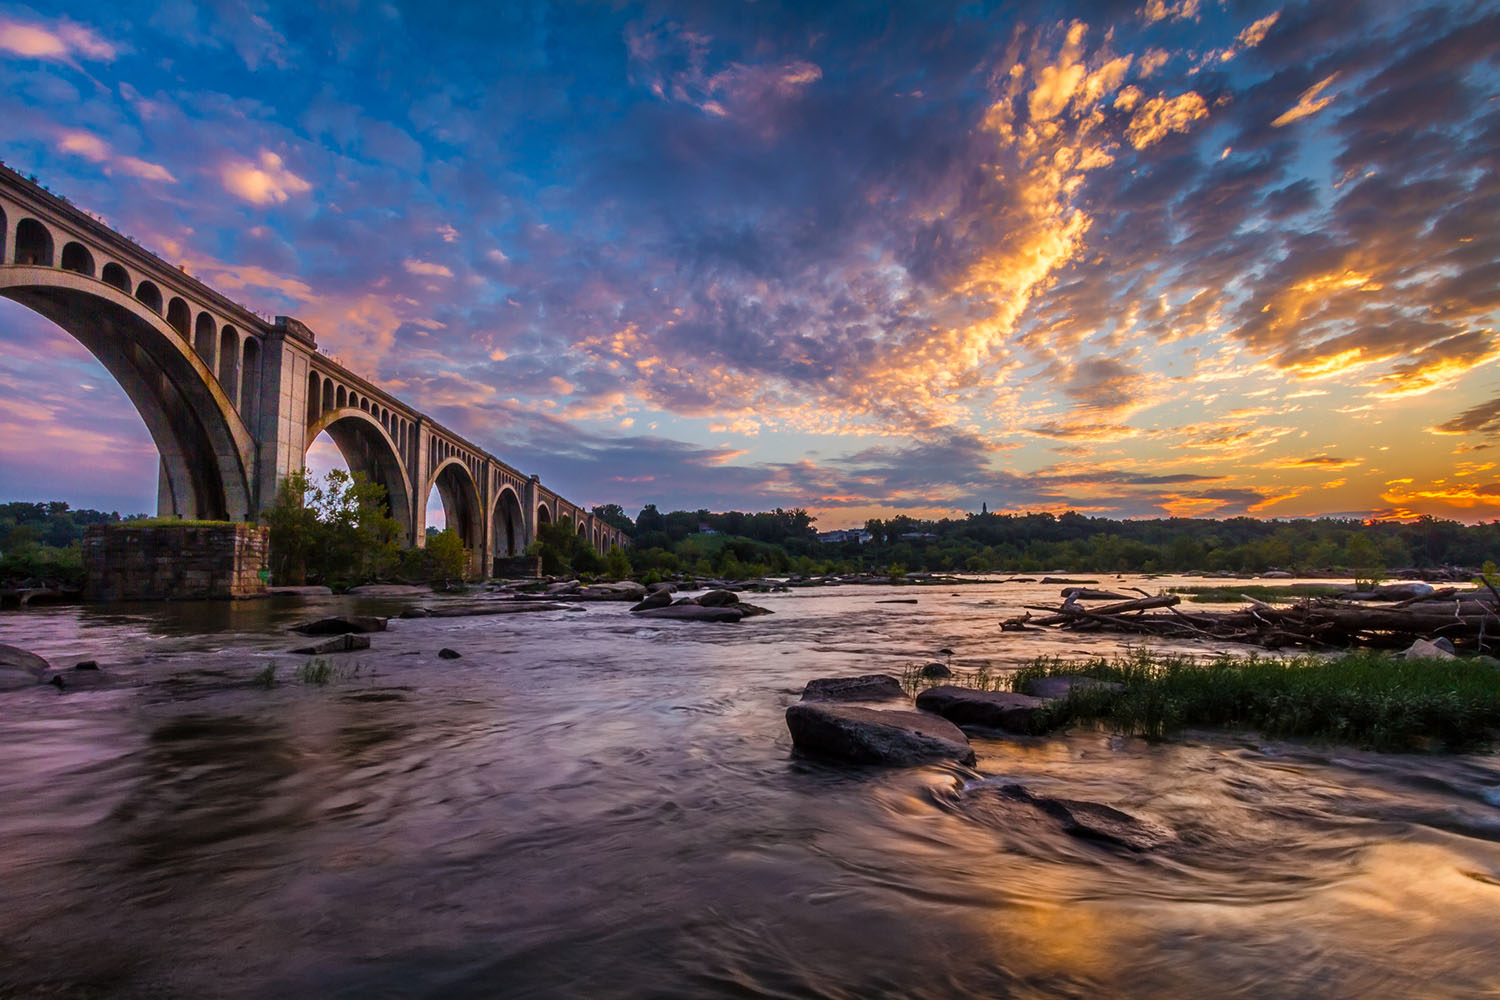 Richmond, va - Enjoy the best of both worlds. The capital city has the hustle and bustle of a major city, with just enough quiet nooks for a peaceful night in. And with the skyline and views of the historic James River, you've got picture-perfect moments at every turn.